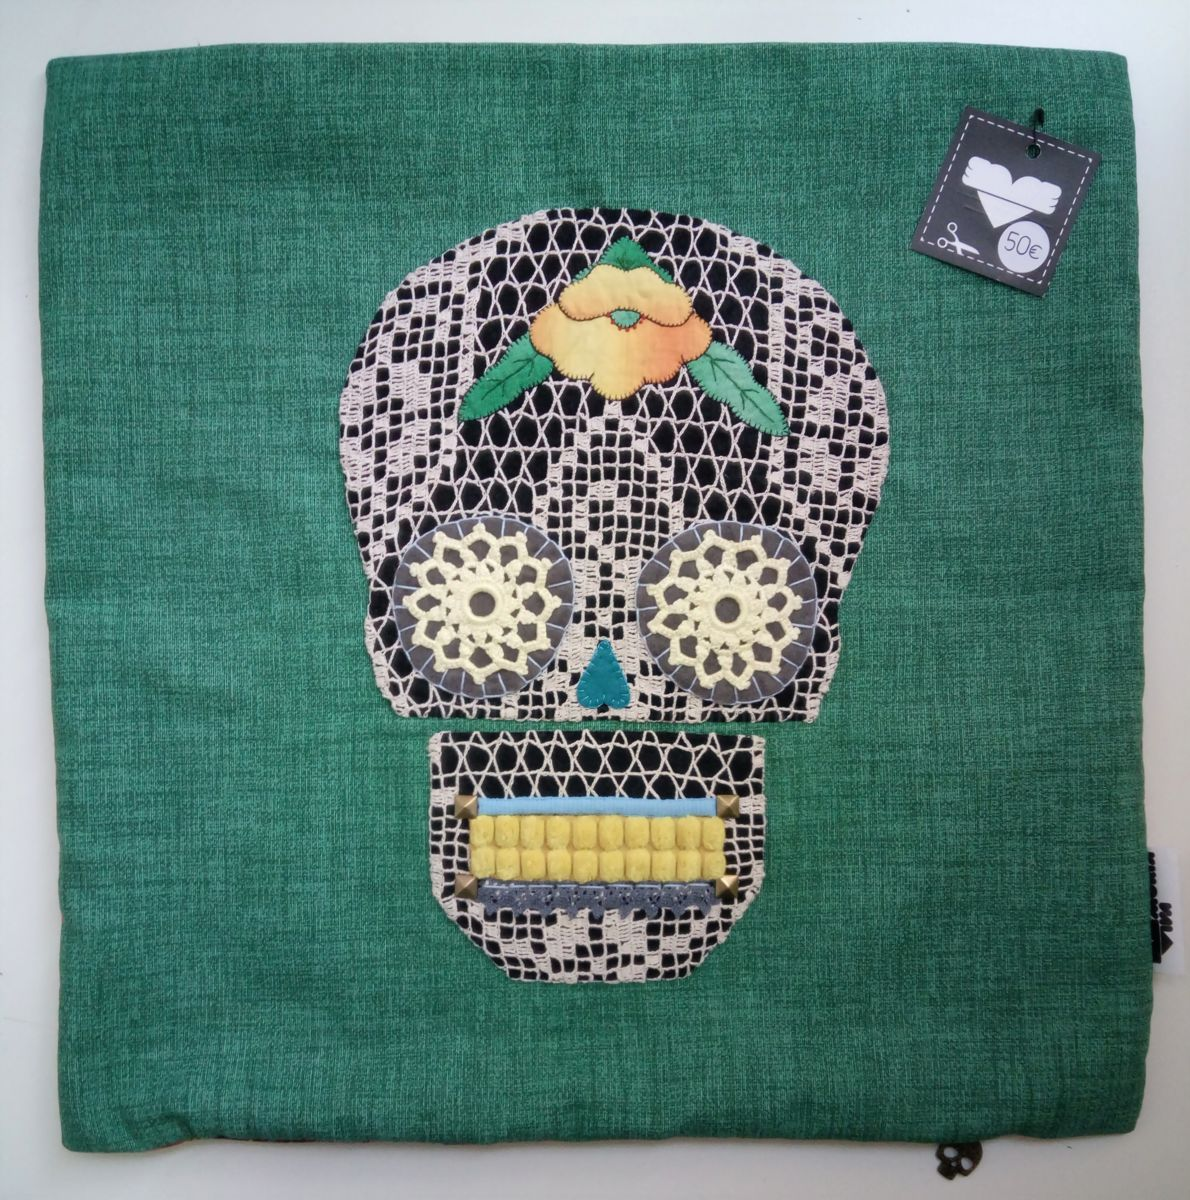 Unique Handstiched Mexican Skull Pillow Case - Mixed Media ©2018 by Memória Viva -            MEXICAN, DAY OF THE DEAD, CATRINA, CROCHET, EMBROIDERY, TEXTILE ART, FIBER ARTS, MEMORIA VIVA